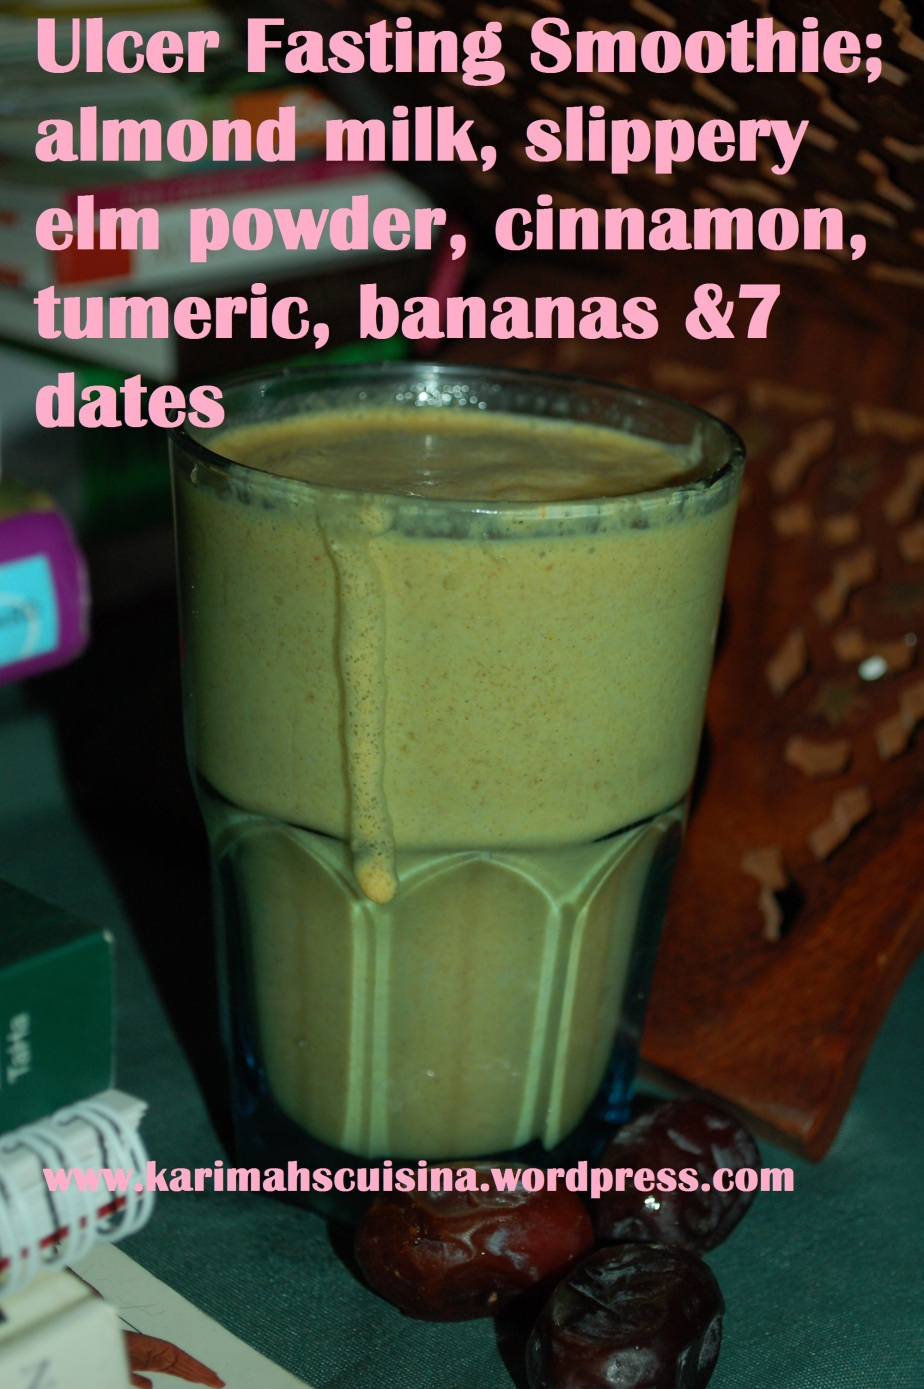 Ulcer Smoothie